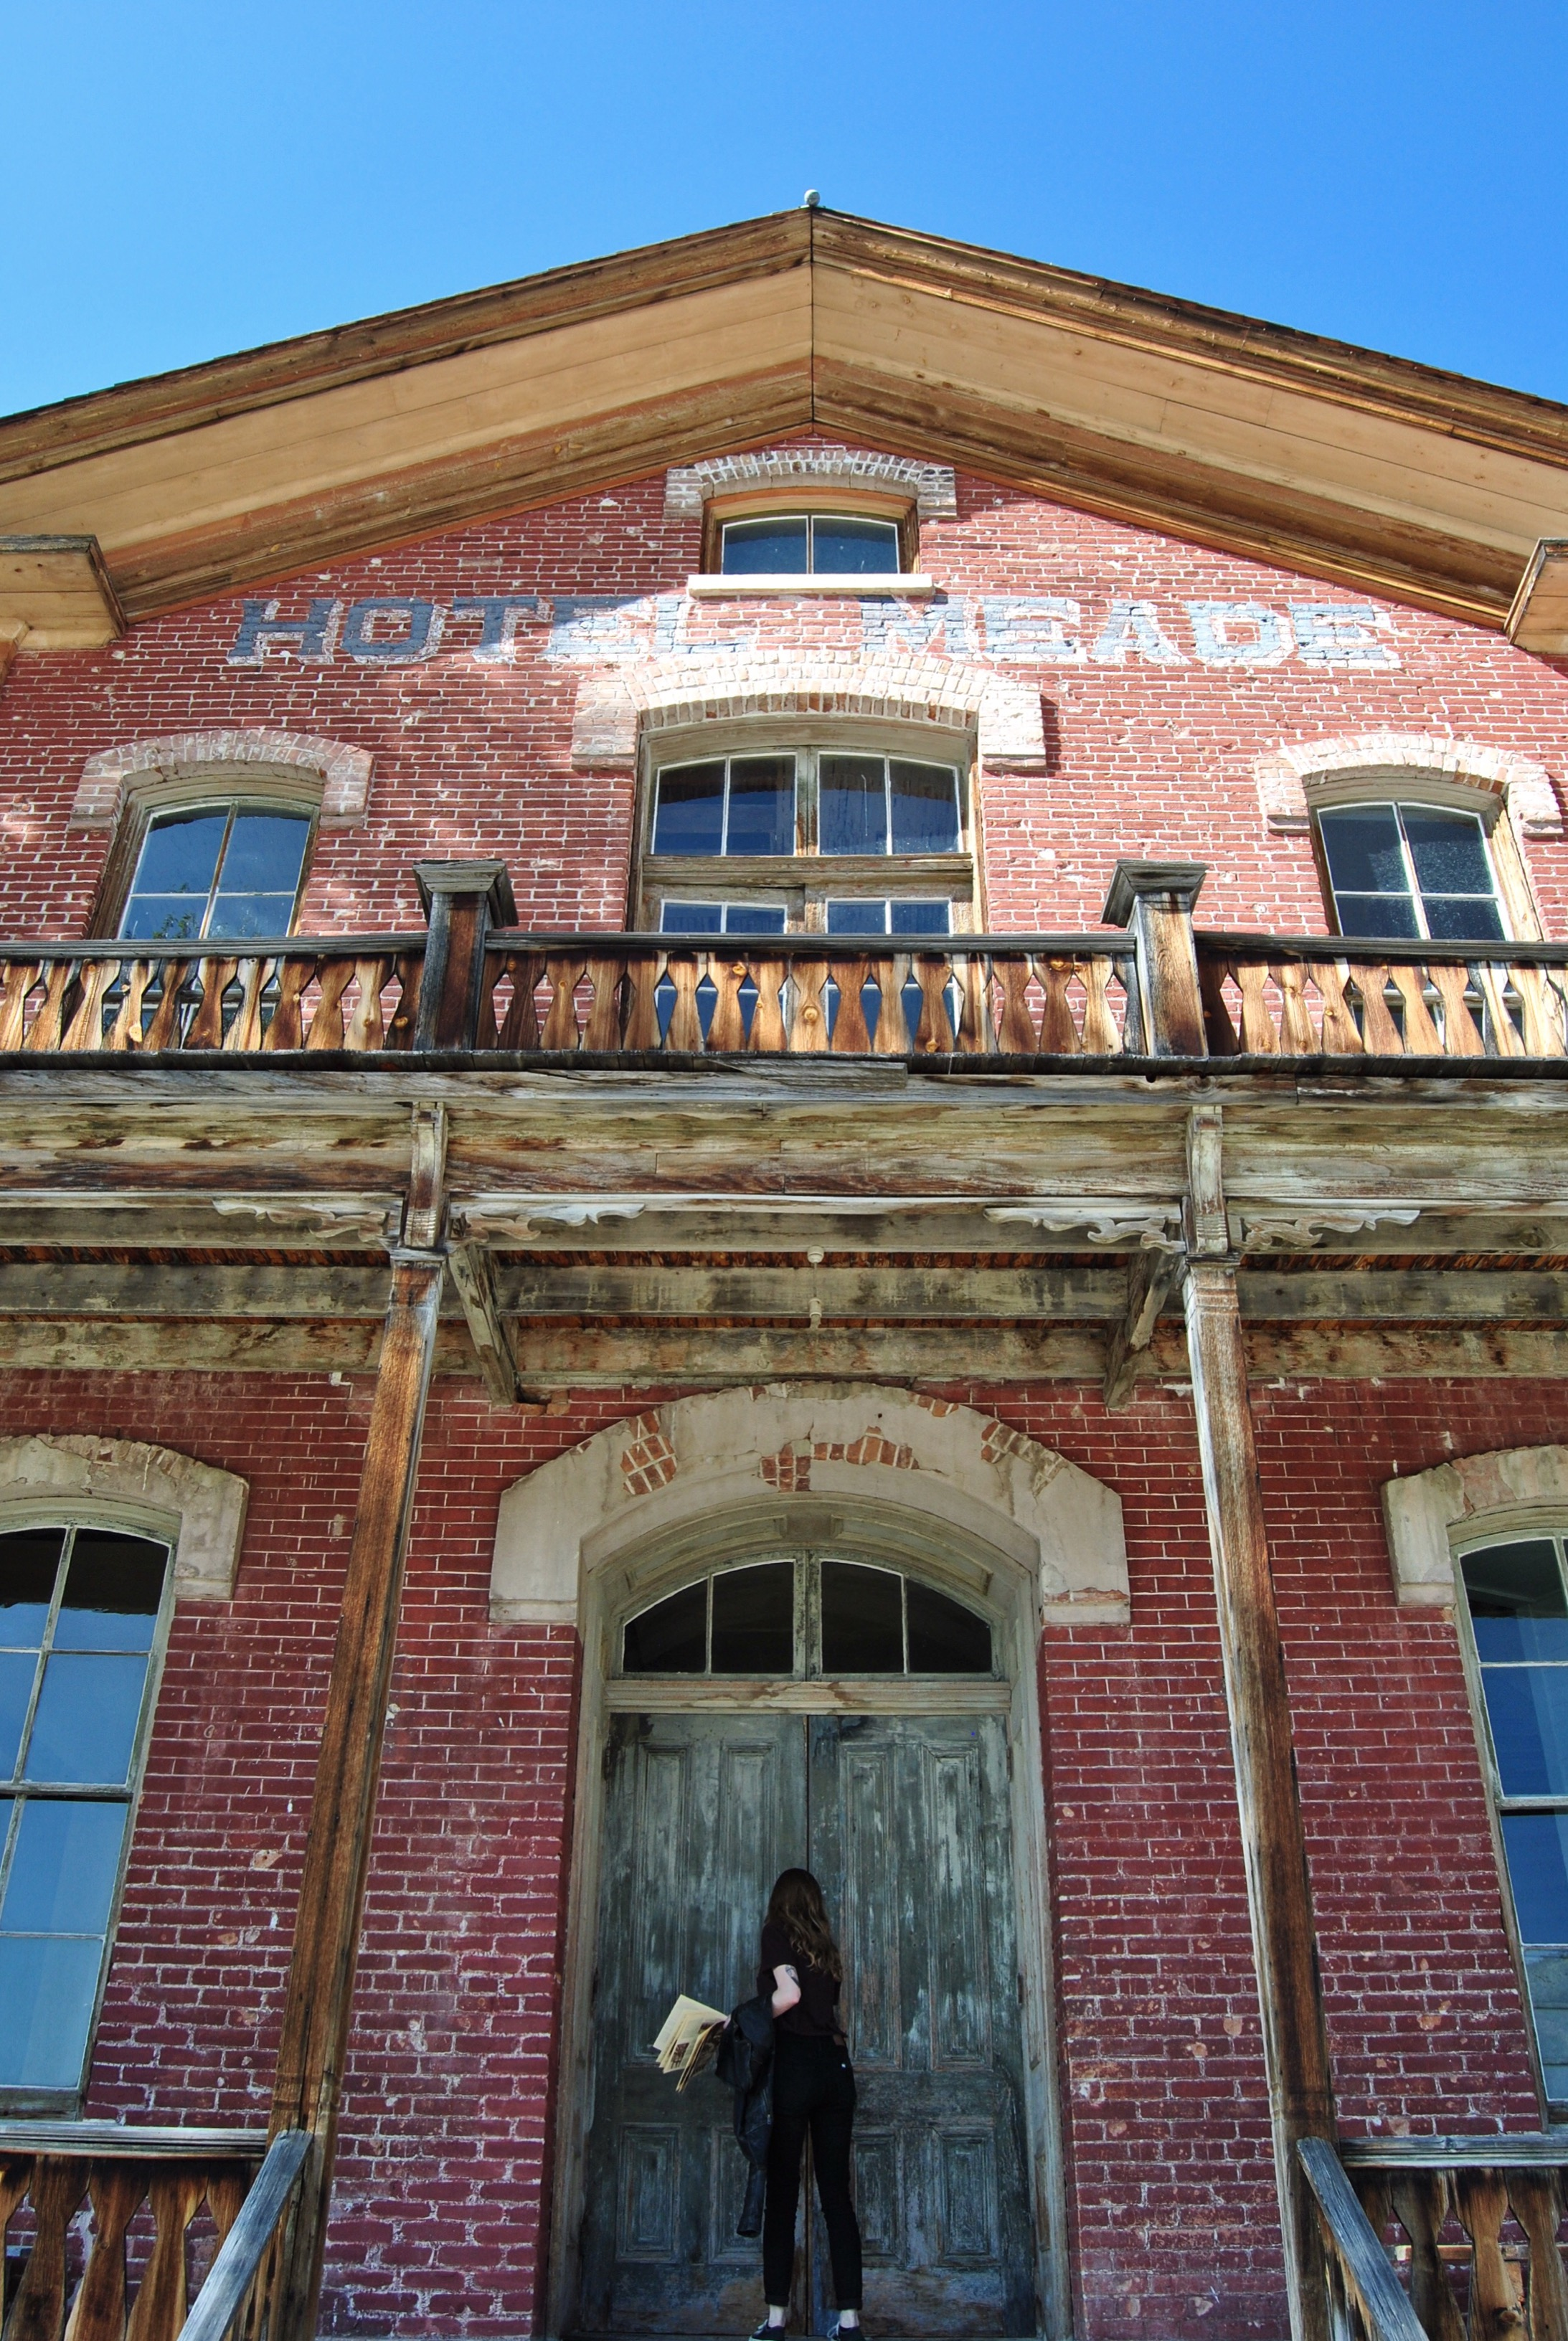 The old - and apparently haunted - hotel, and a fearless adventurer.